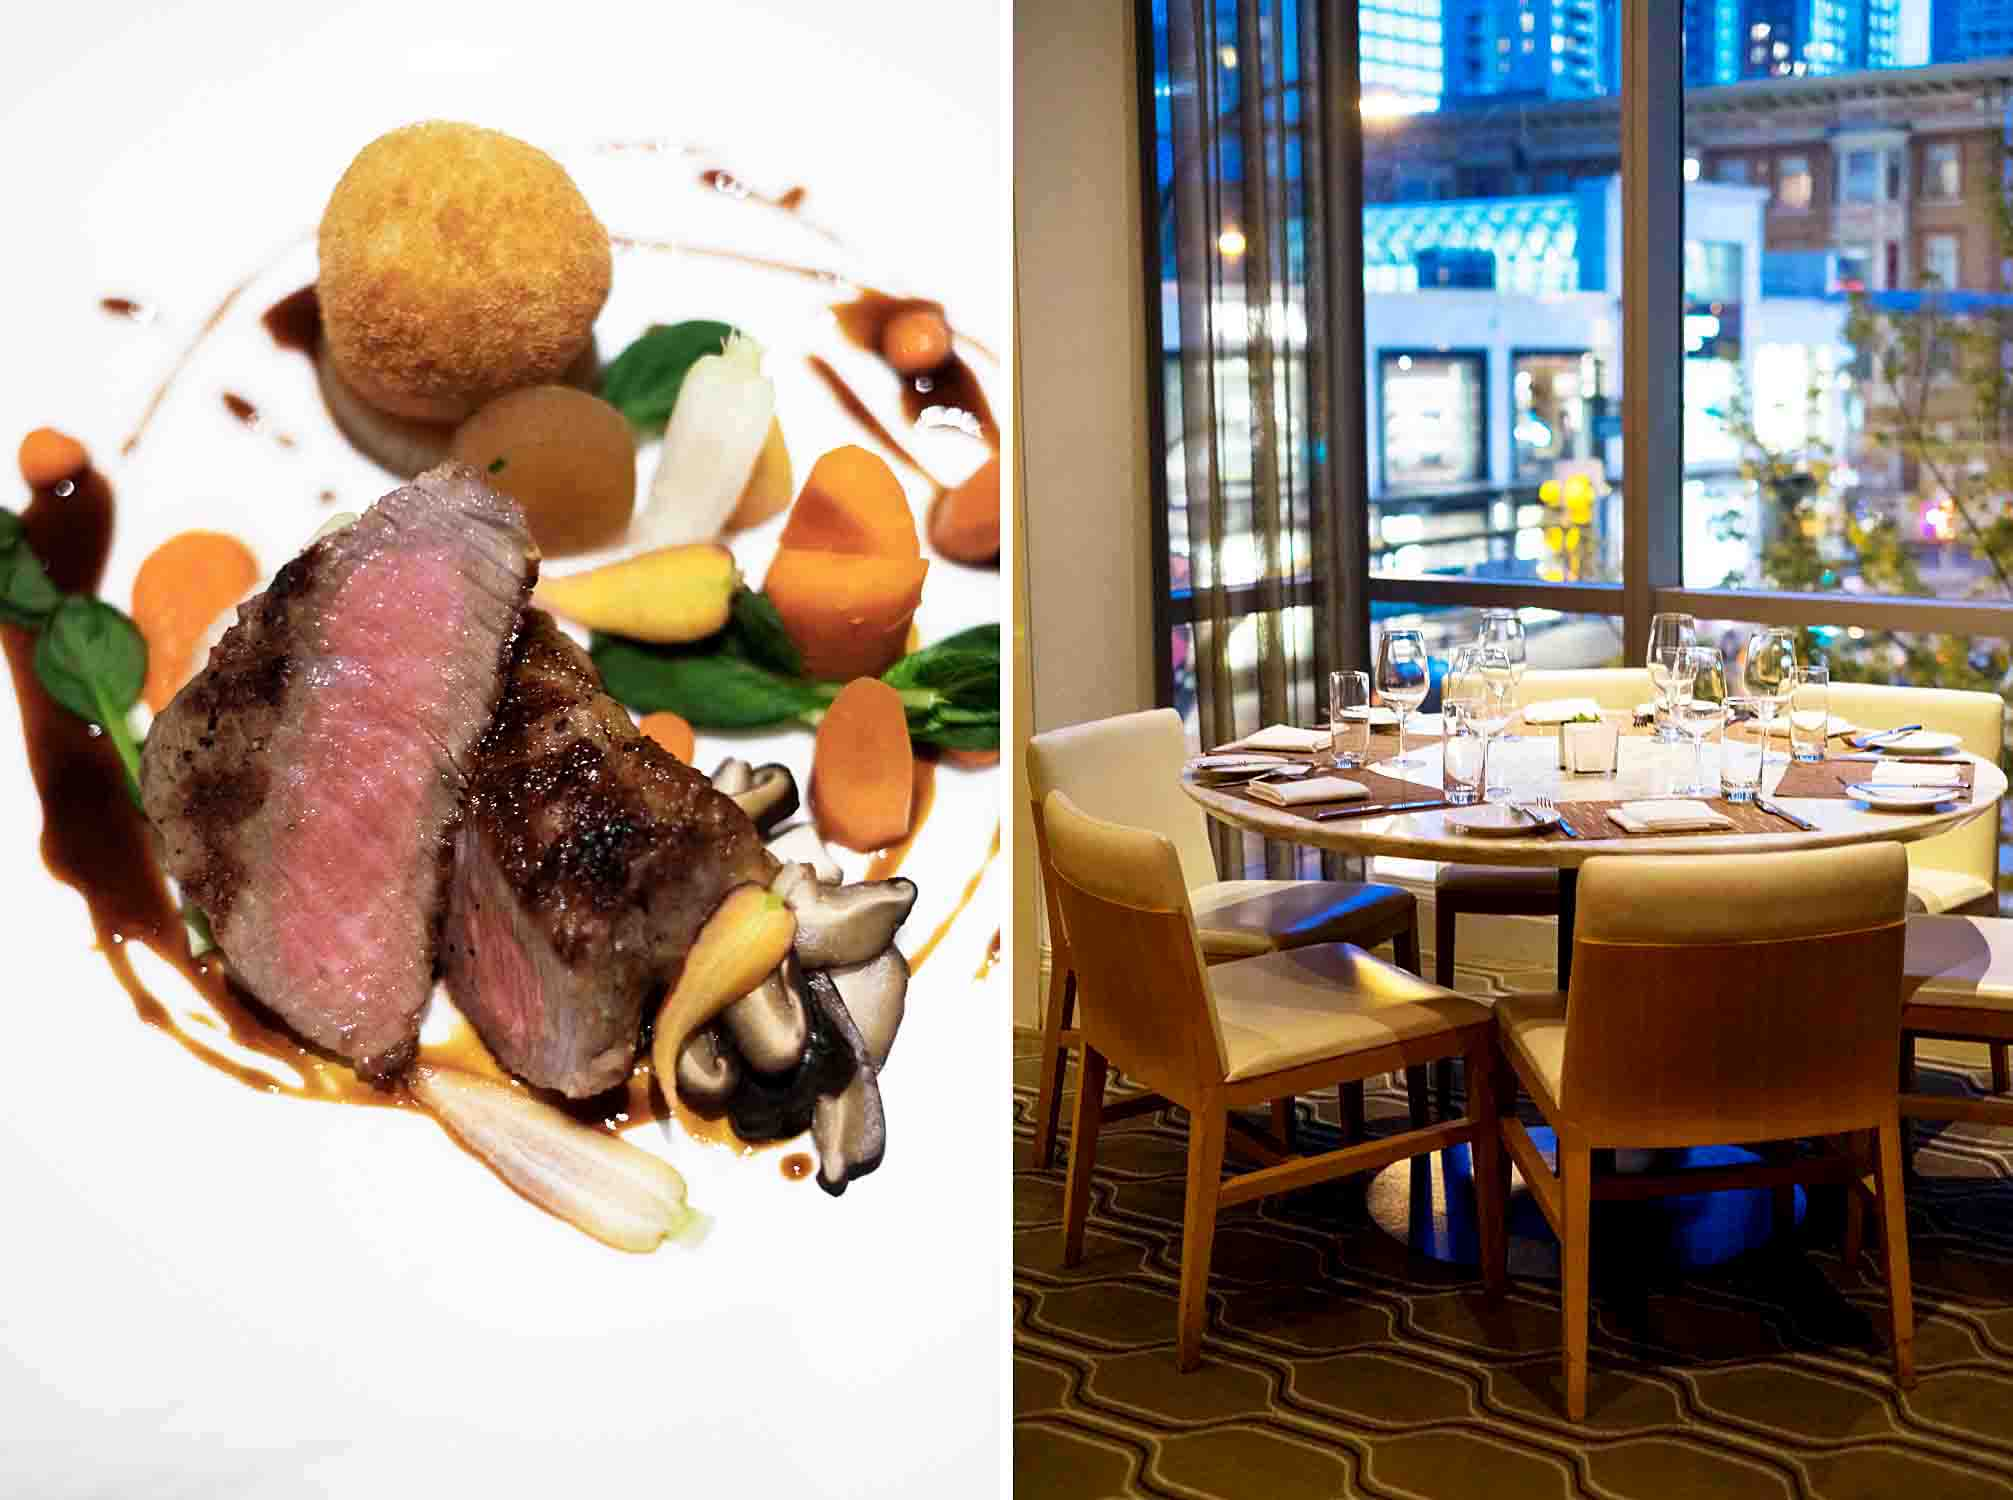 Market by Jean-Georges is the first restaurant in Canada for three-star Michelin chef Jean-Georges Vongerichten. It's located on the third floor of the Shangri-La hotel Vancouver